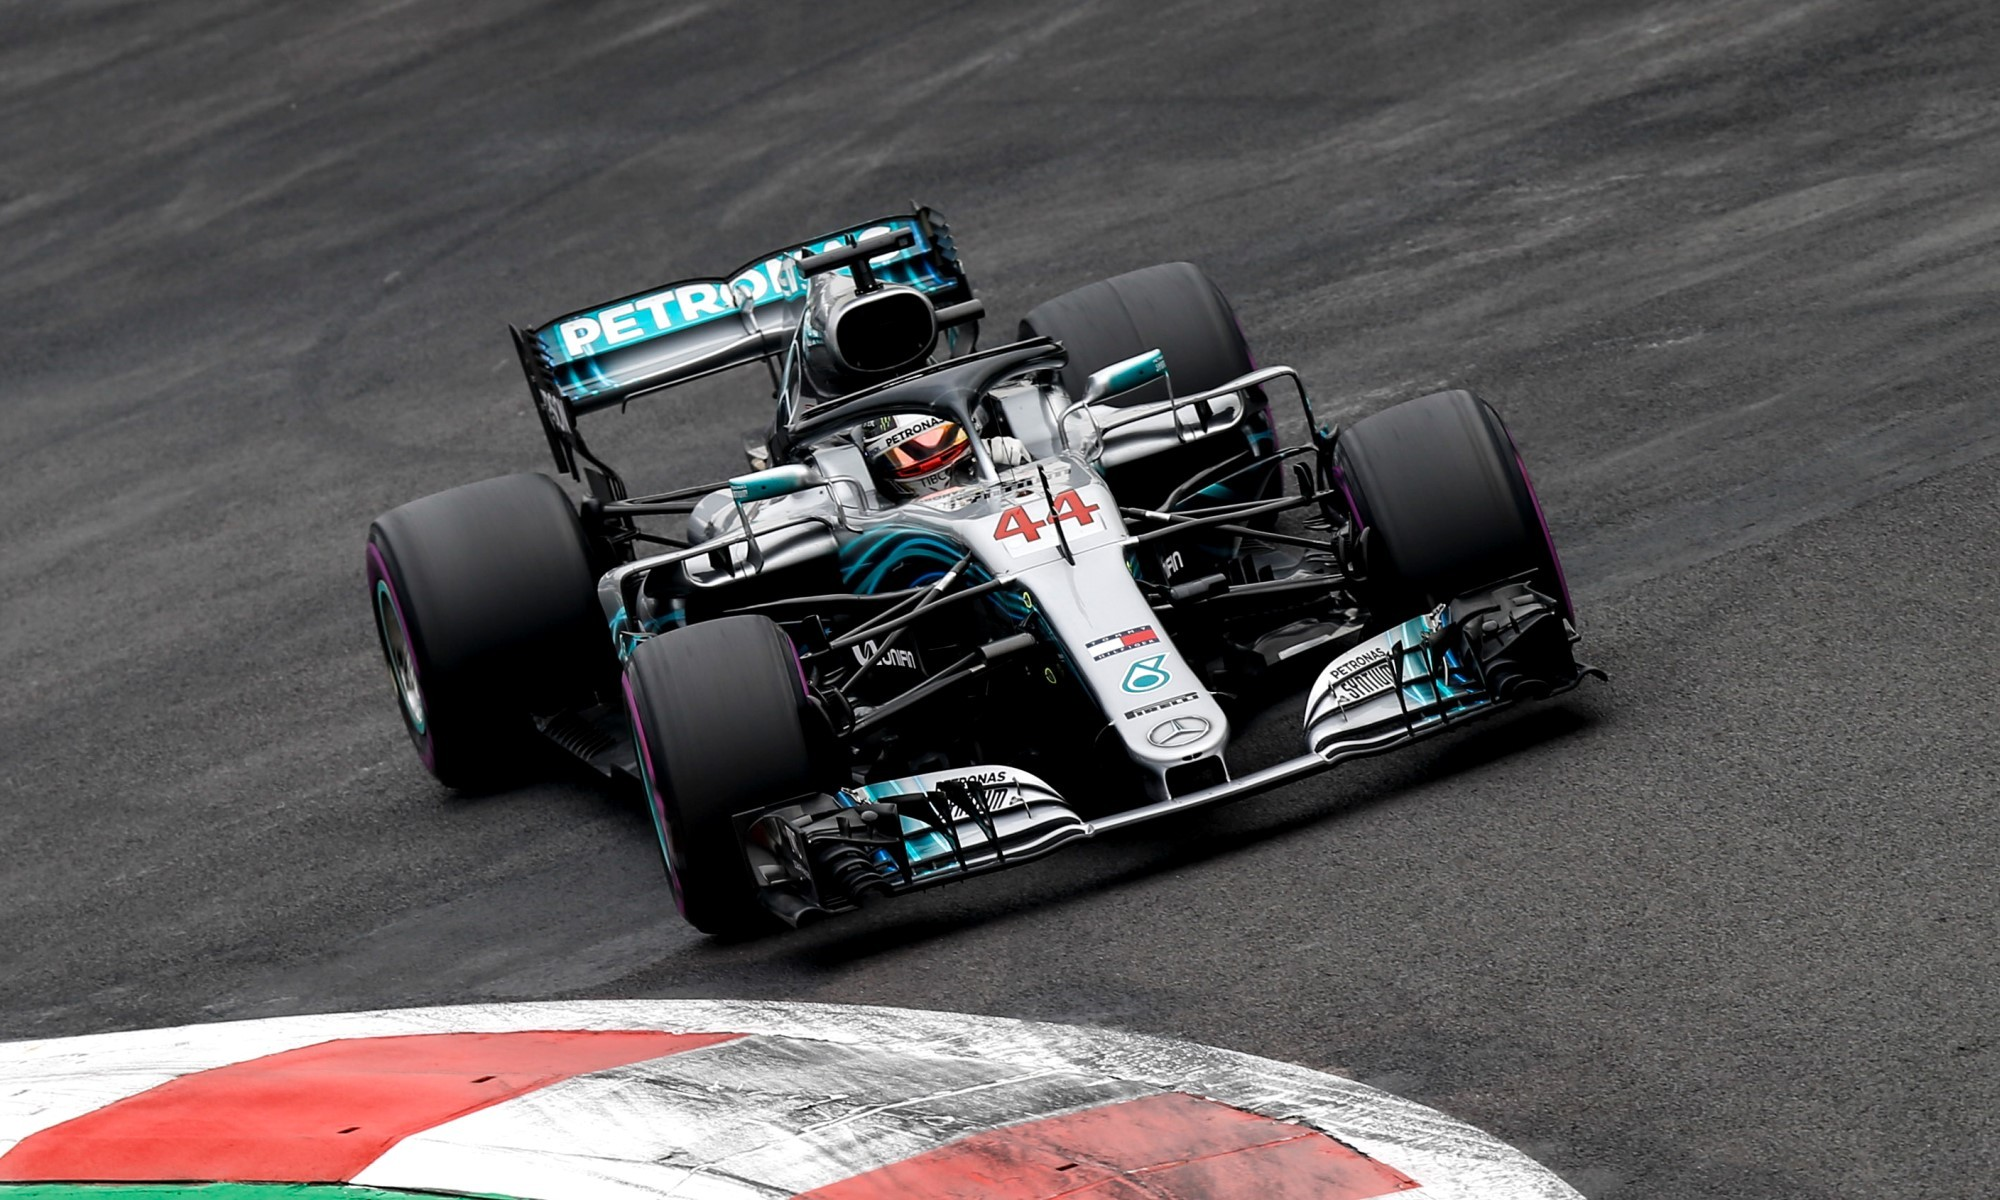 Lewis Hamilton in the 2018 F1 Driver's Champion